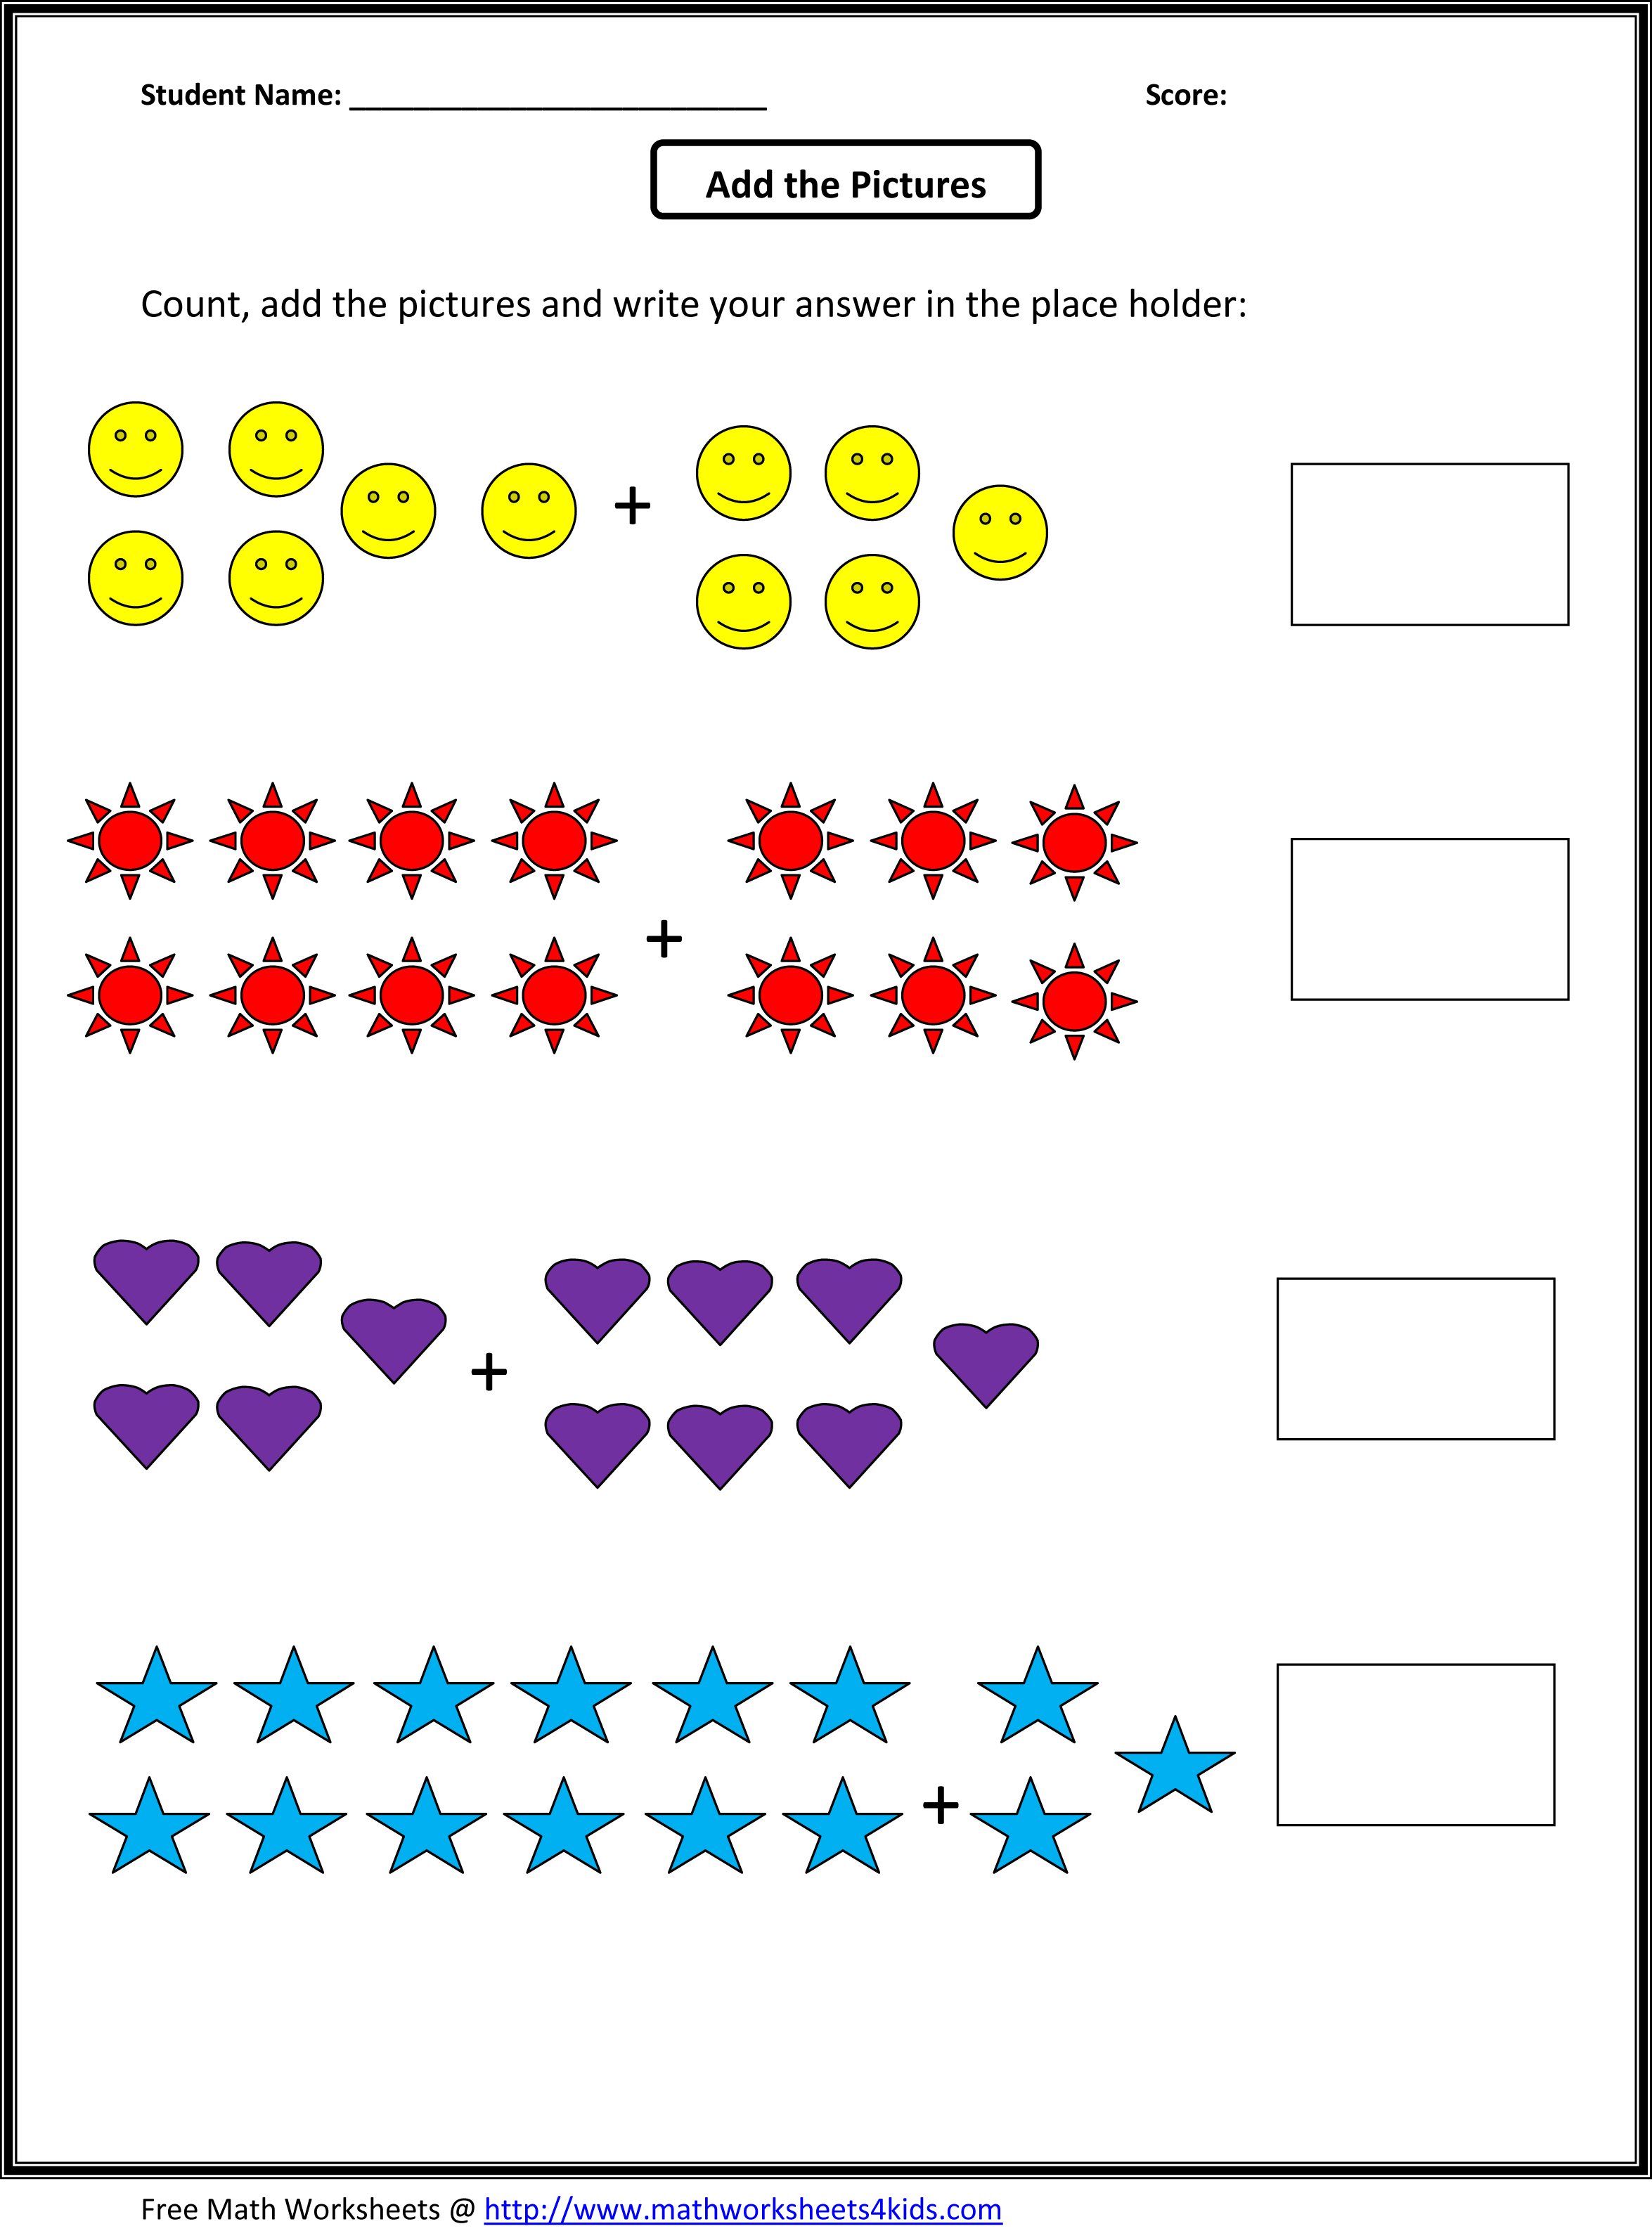 Weirdmailus  Inspiring Grade  Maths Worksheet  Reocurent With Exquisite Math Worksheets For St Grade Free  Reocurent With Amazing Writing Similes Worksheet Also Cursive Writing Free Worksheets In Addition Grade  Addition Worksheets And Glencoe Mcgraw Hill Worksheets As Well As Blank Handwriting Worksheets For Kids Additionally St Grade Pictograph Worksheets From Reocurentcom With Weirdmailus  Exquisite Grade  Maths Worksheet  Reocurent With Amazing Math Worksheets For St Grade Free  Reocurent And Inspiring Writing Similes Worksheet Also Cursive Writing Free Worksheets In Addition Grade  Addition Worksheets From Reocurentcom